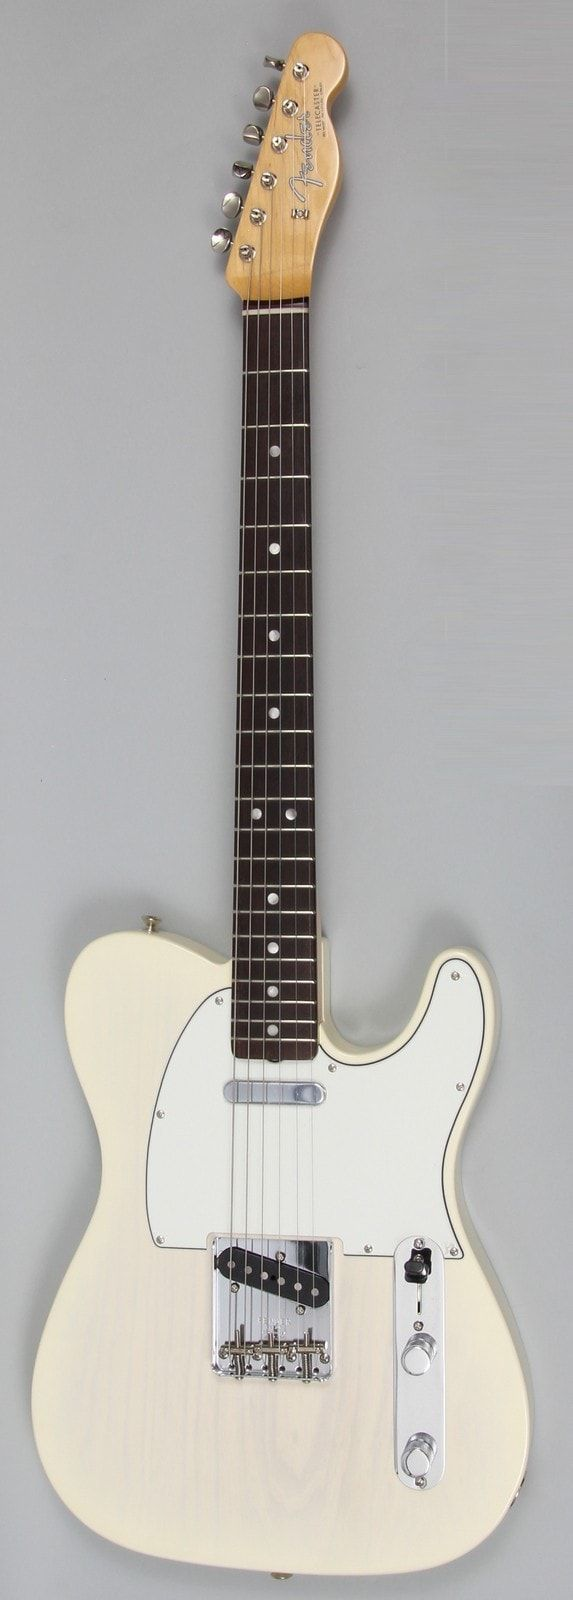 Fender American Vintage '64 Telecaster Electric Guitar | Aged White Blonde